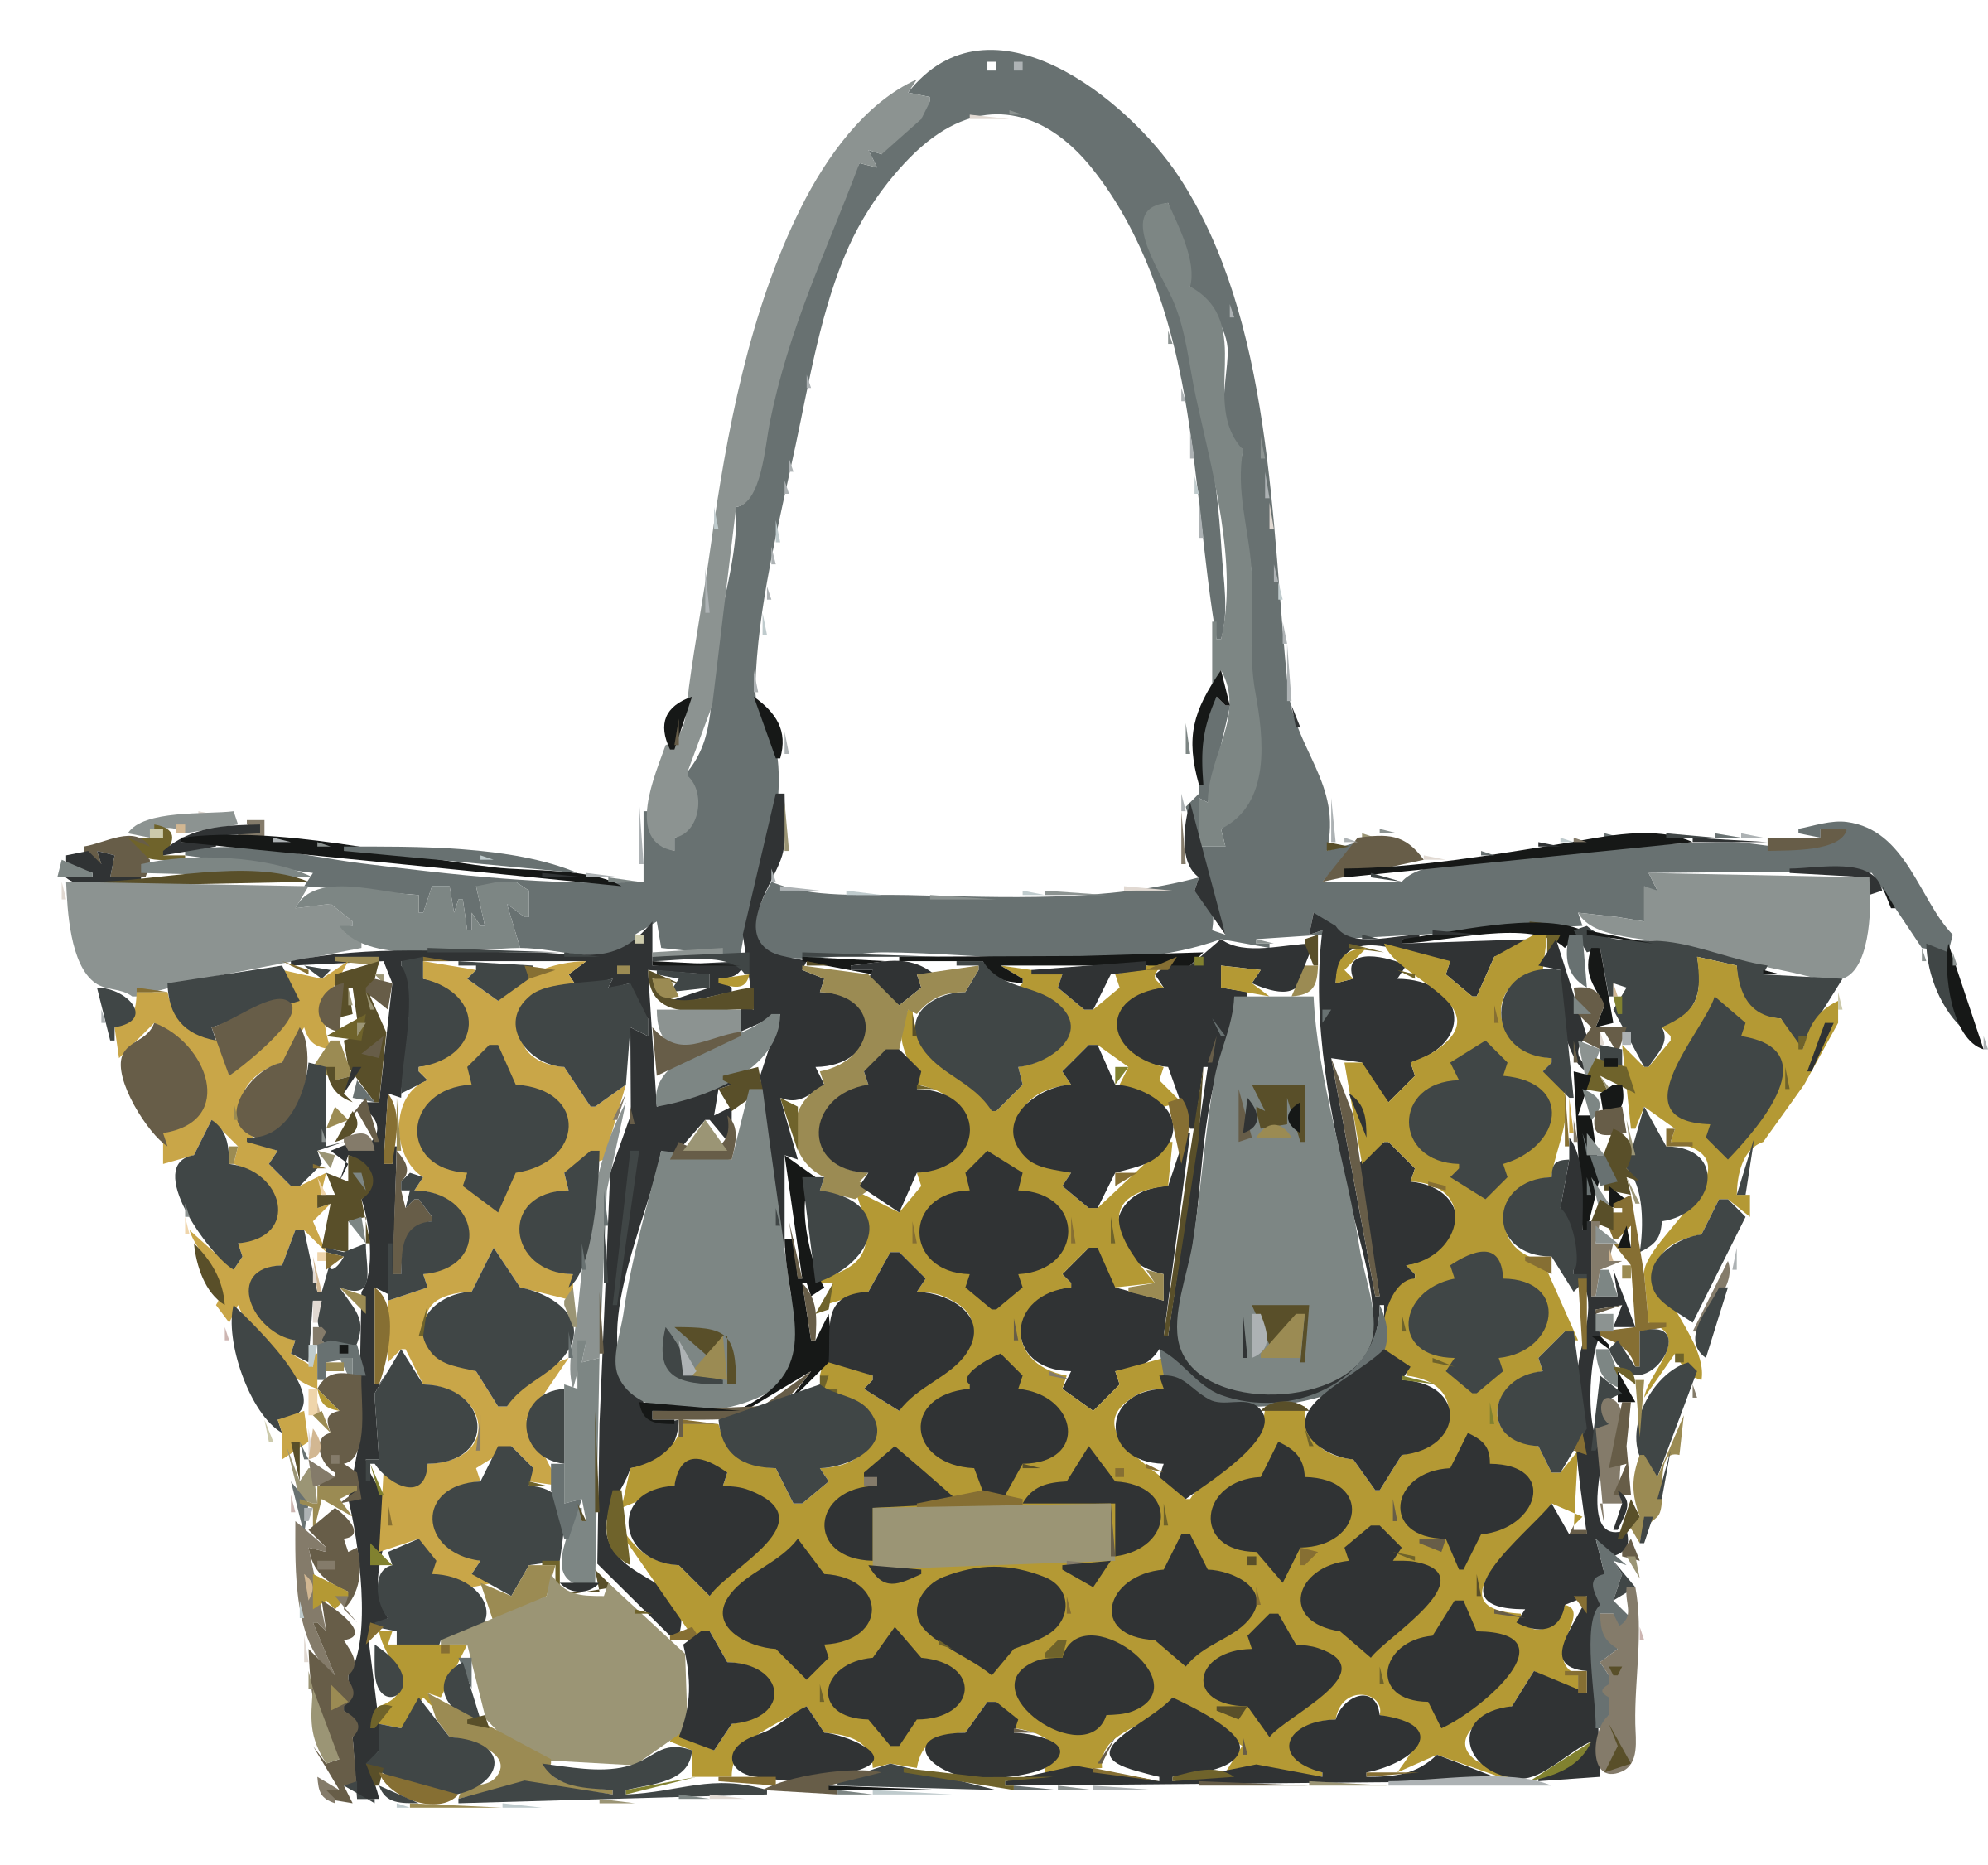 Leather Patterned Bag No Logo by rejon